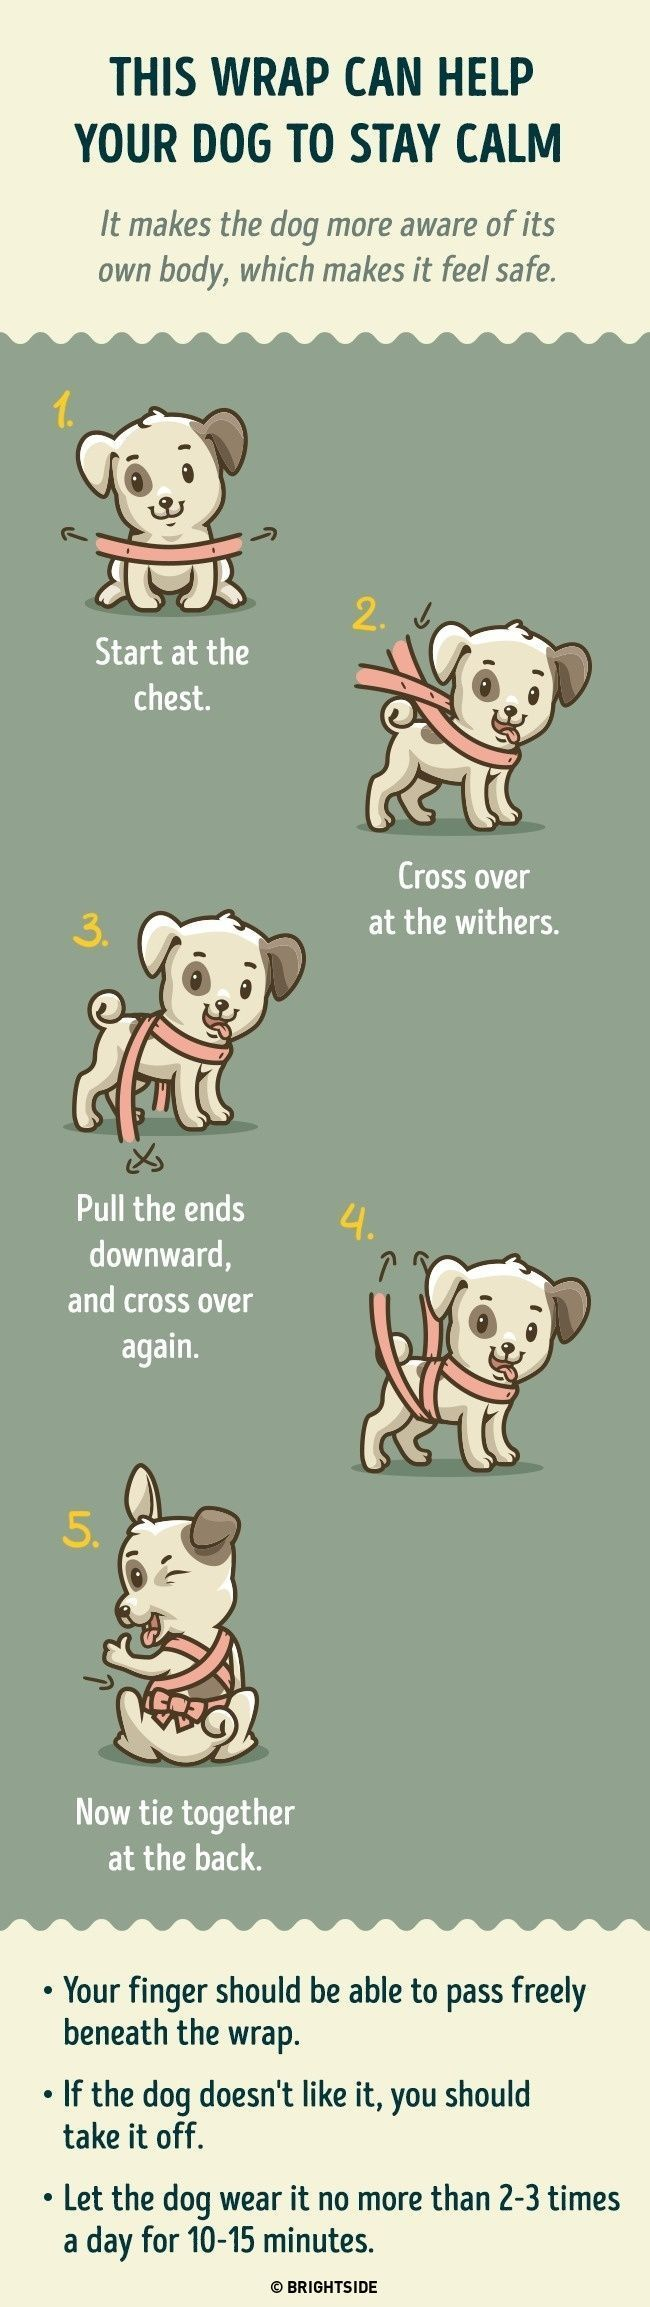 This dog wrapping technique can help keep a dog calm. Especially helpful during storms, fireworks etc